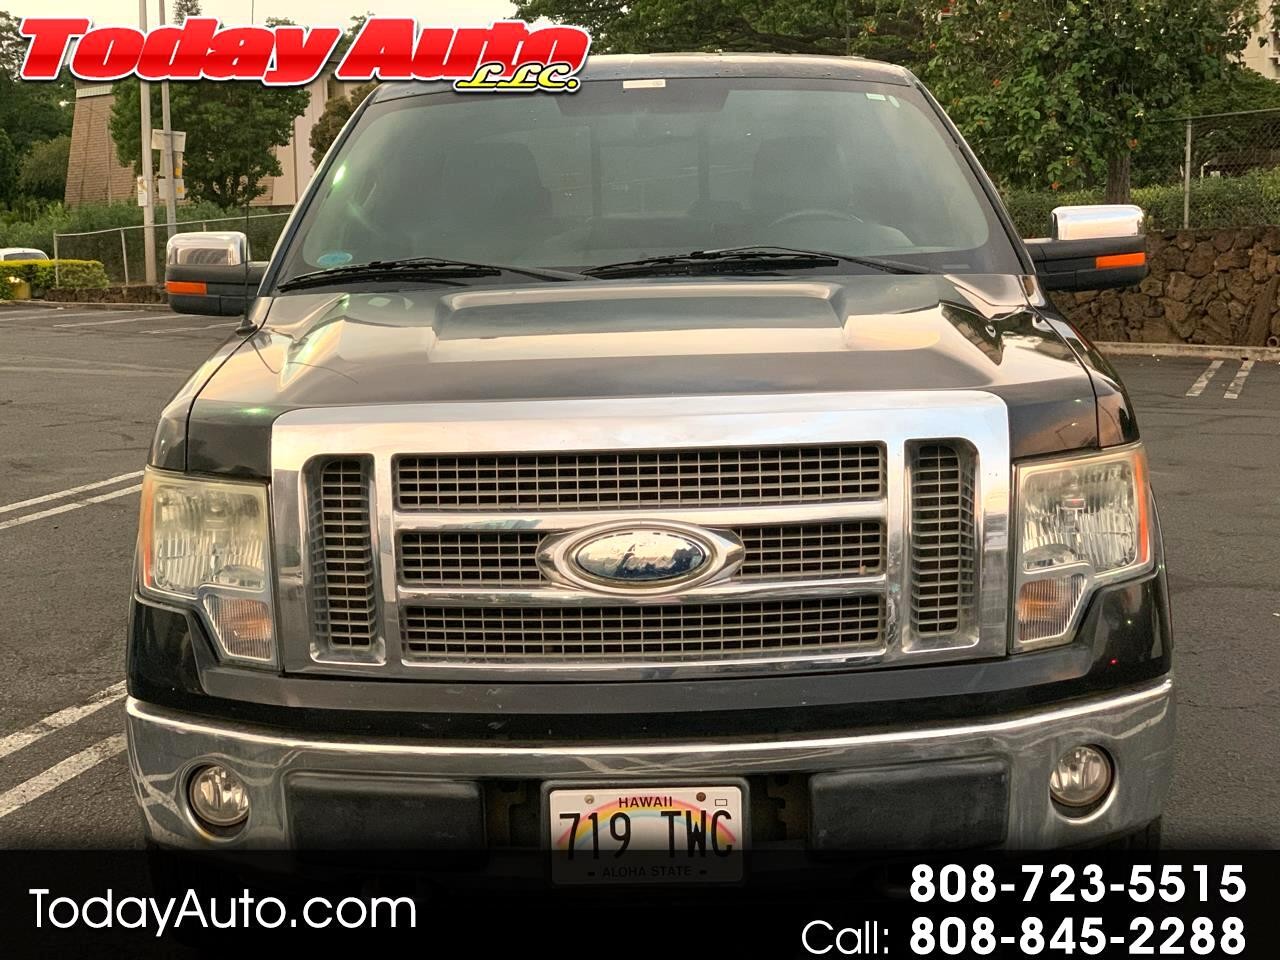 Ford F-150 Lariat SuperCab Short Bed 4WD 2009